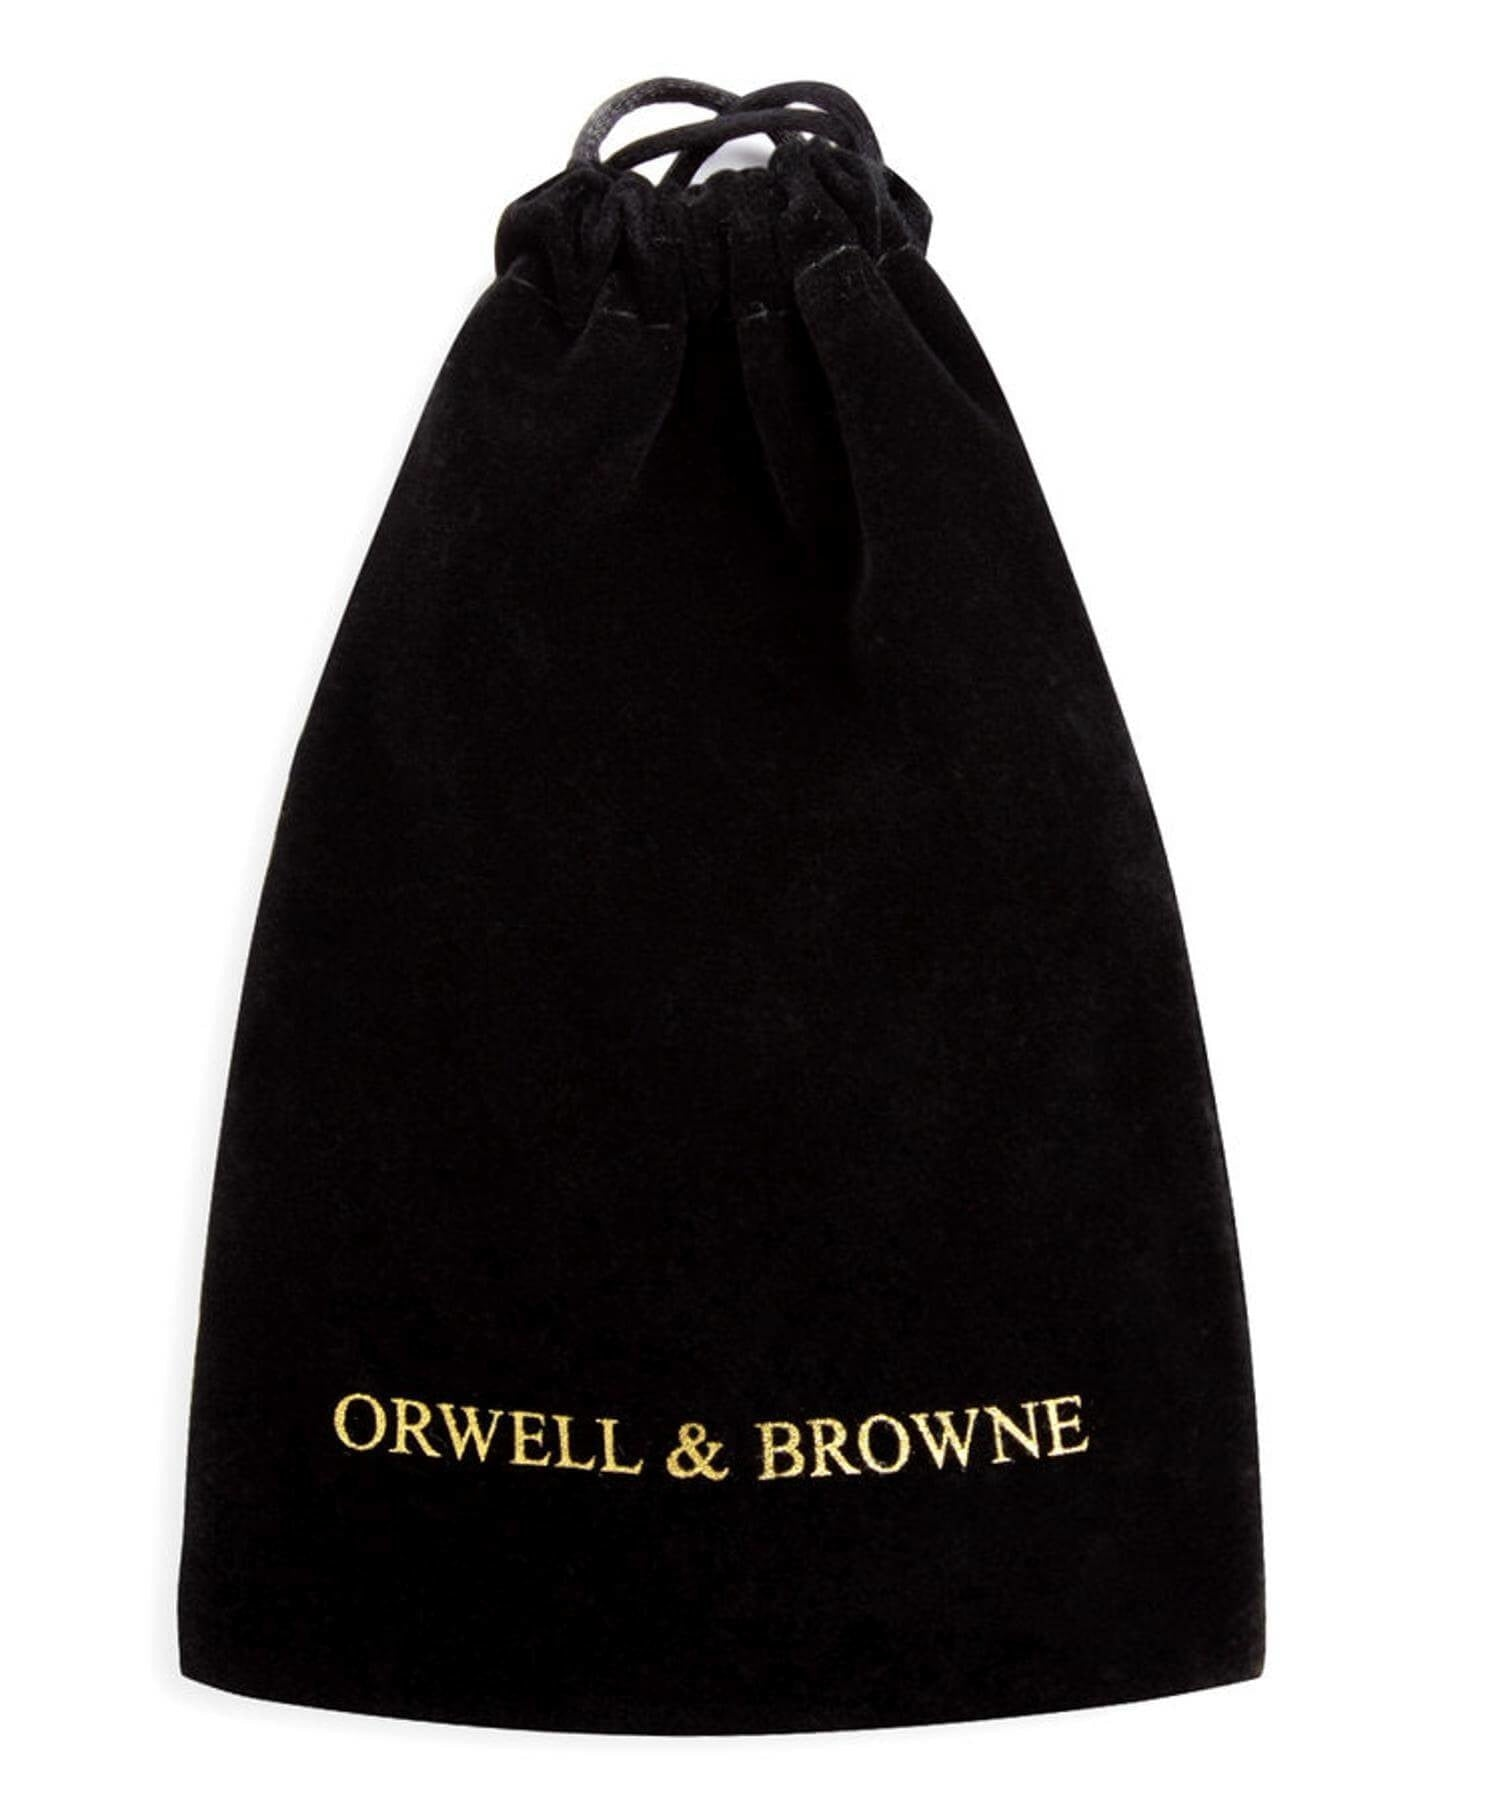 Donegal Tweed Pocket Square - Pinstripe - [Orwell & Browne] - Mens Accessories - Irish Gifts